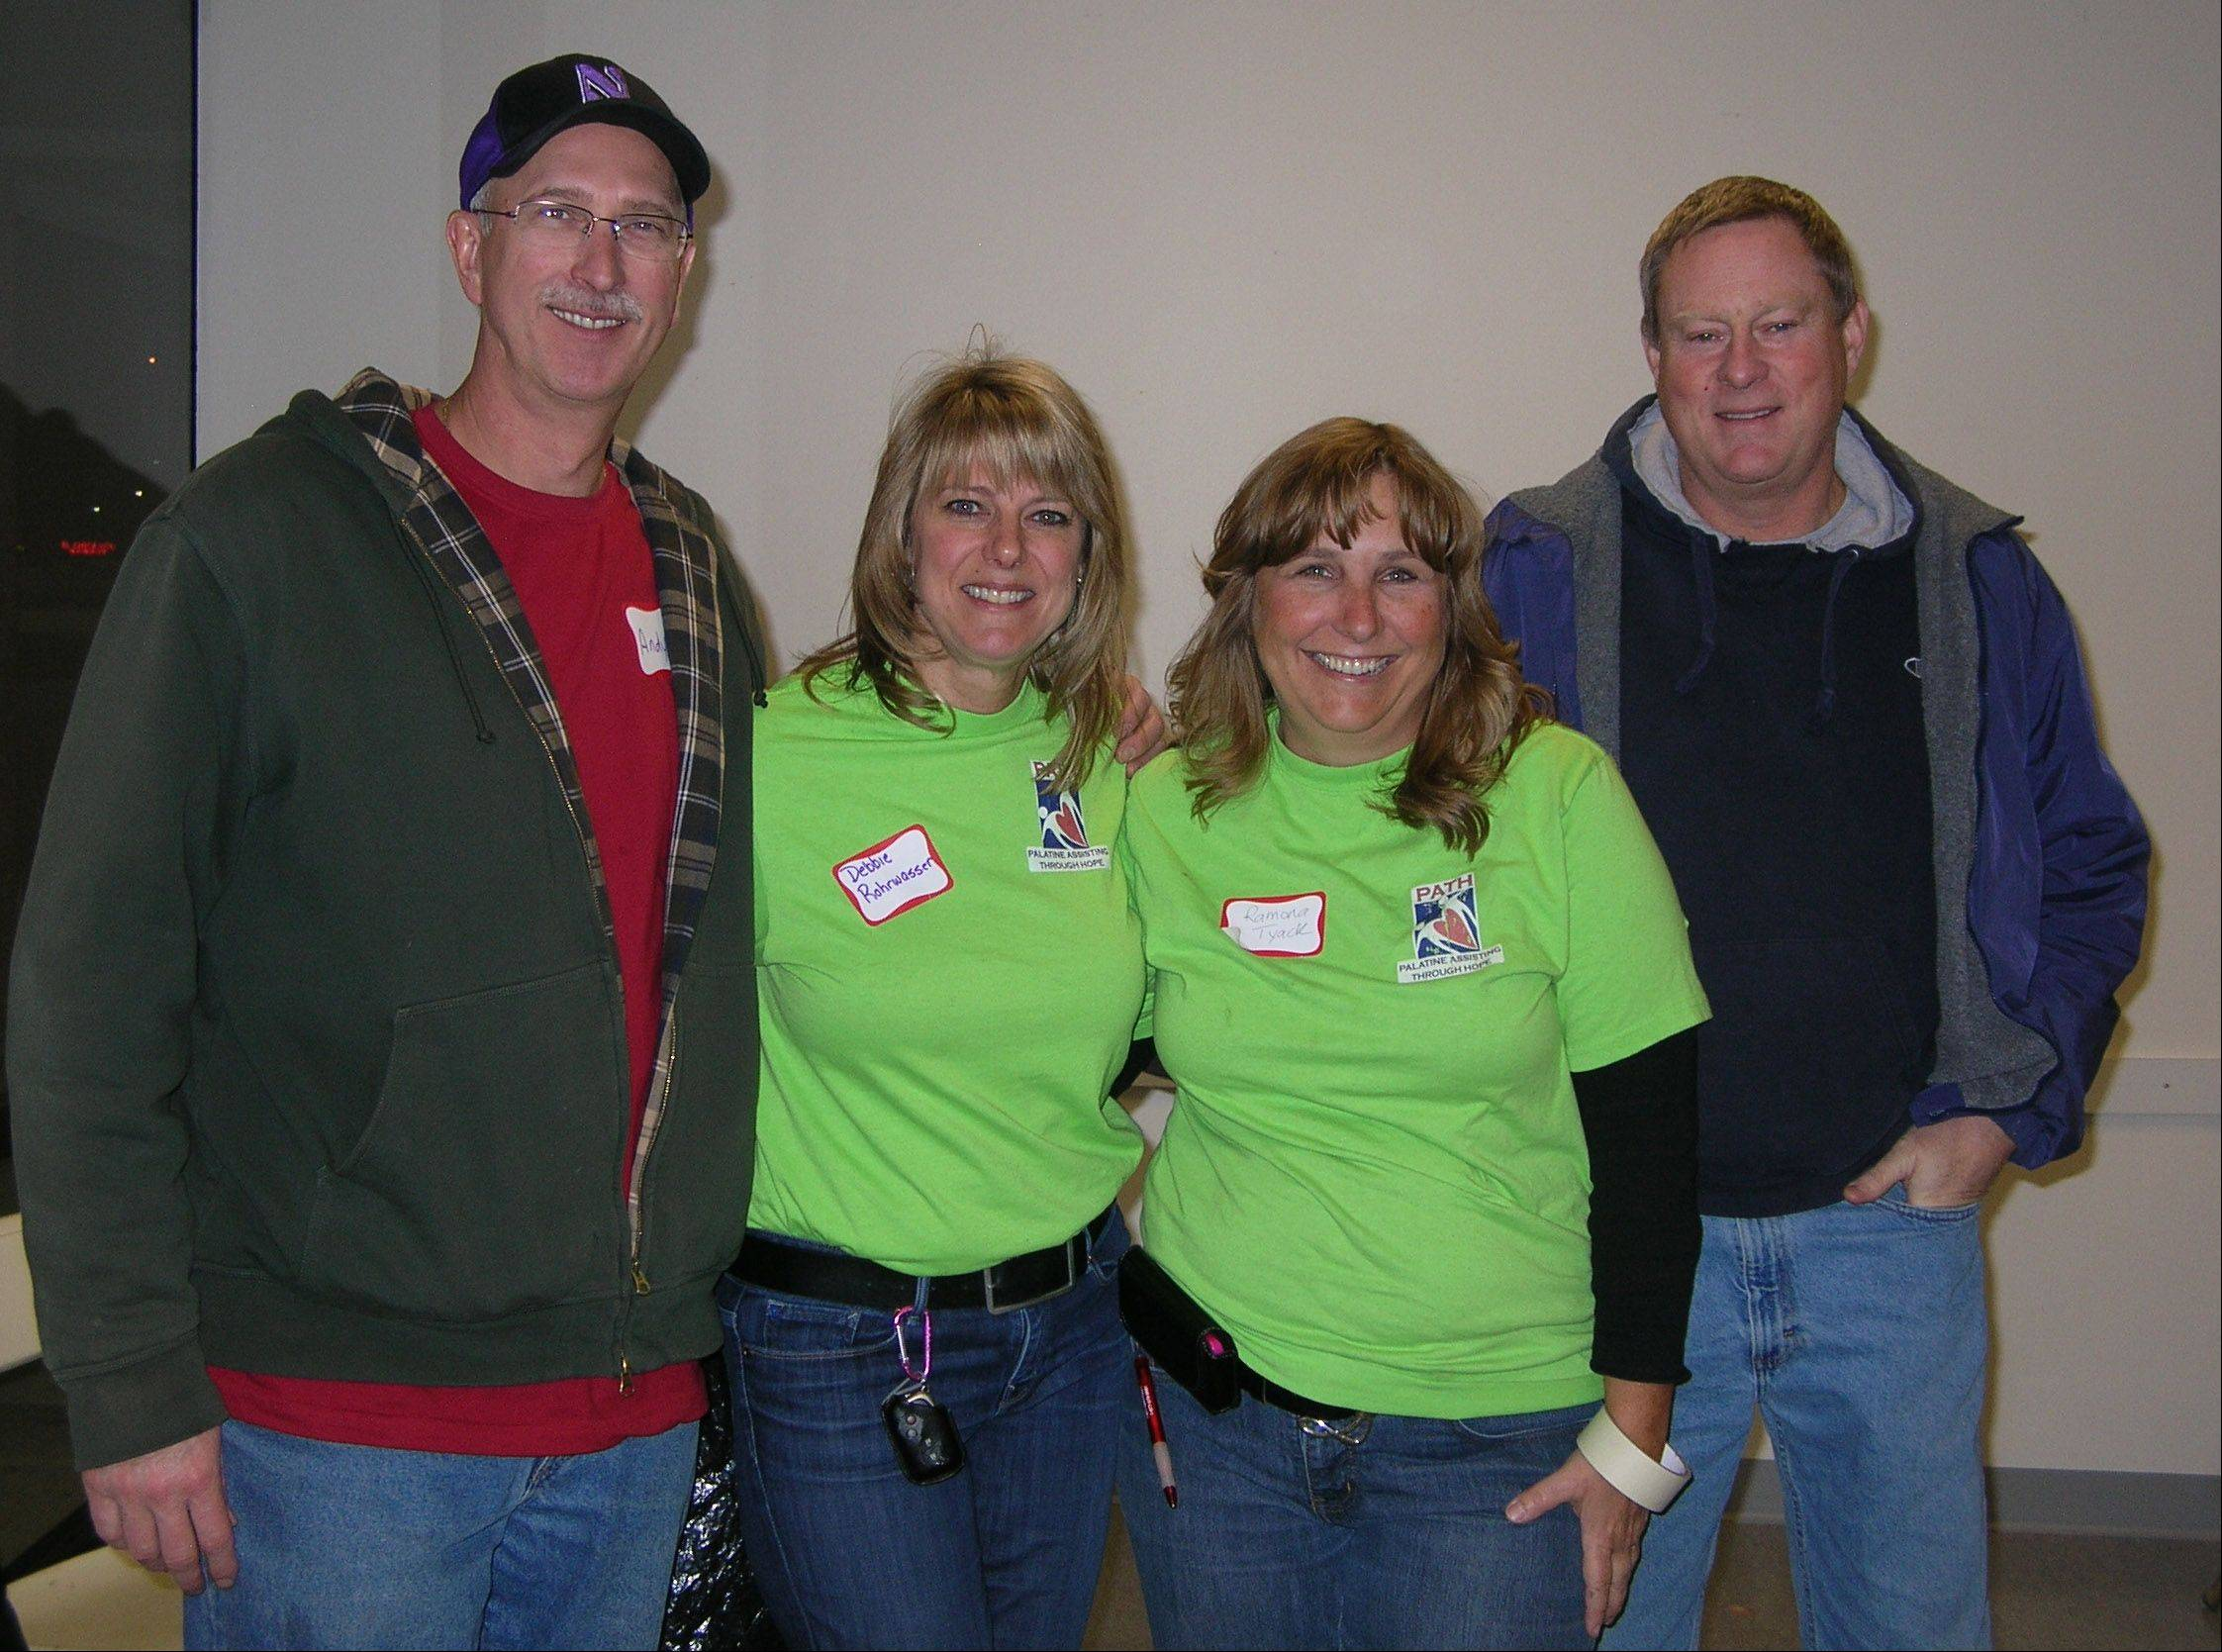 From left, Andy Konopka, Debbie Rohrwasser, Ramona and Rich Tyack founded Palatine Assisting Through Hope, a grass-roots organization that helps families in need find everything from winter clothing to job counseling. The group has grown rapidly since its creation in 2006.